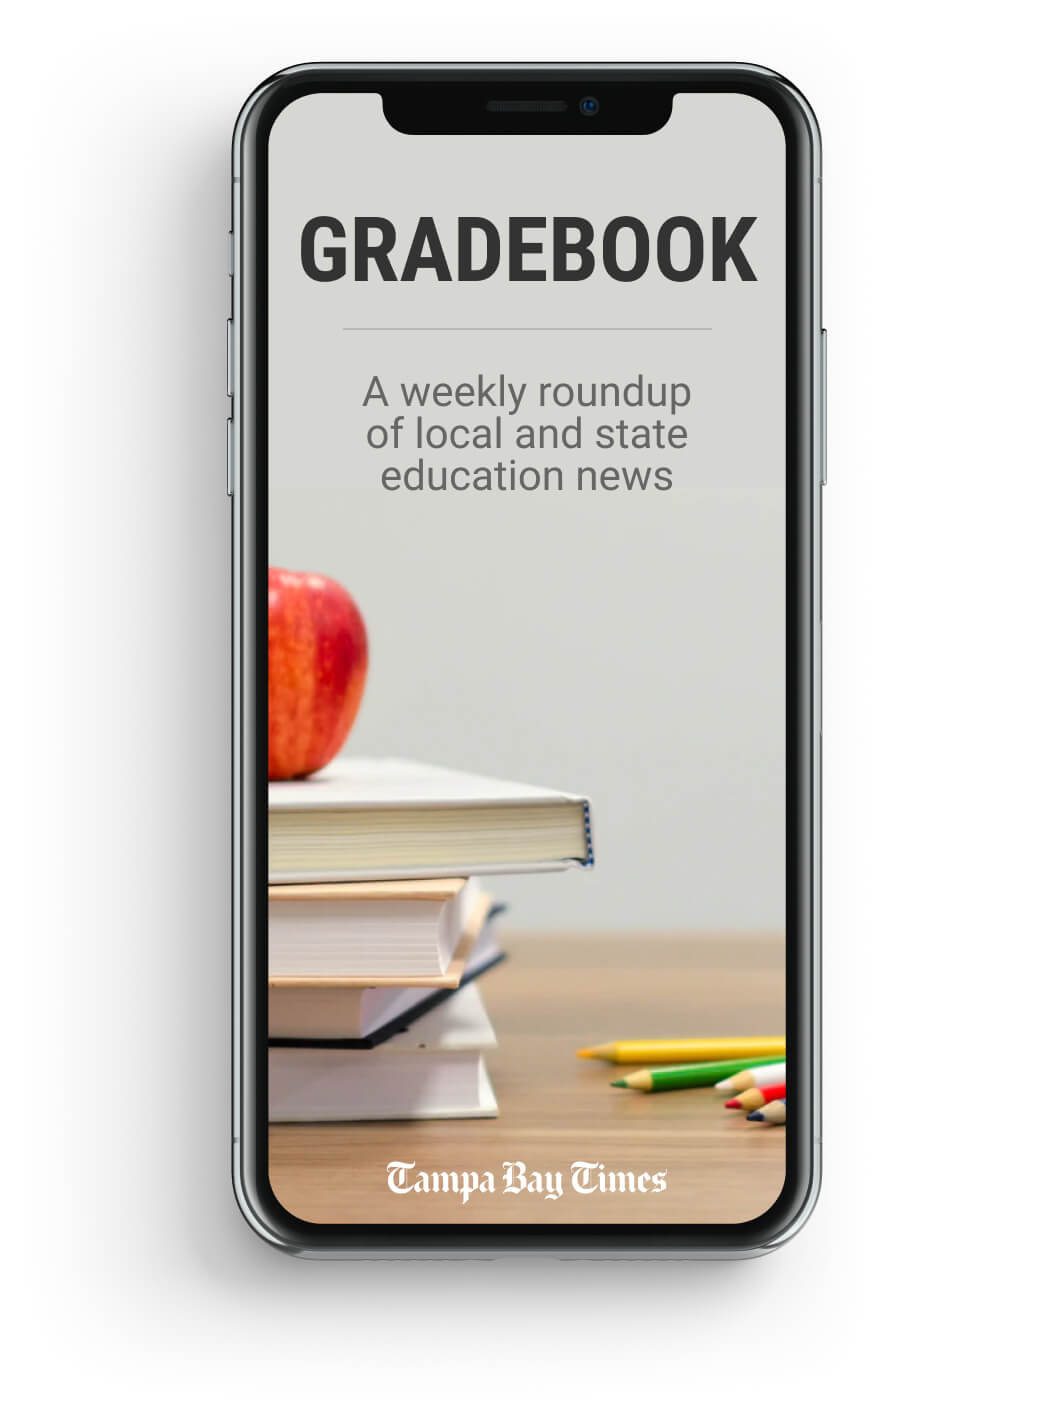 The Tampa Bay Times 'Gradebook' newsletter